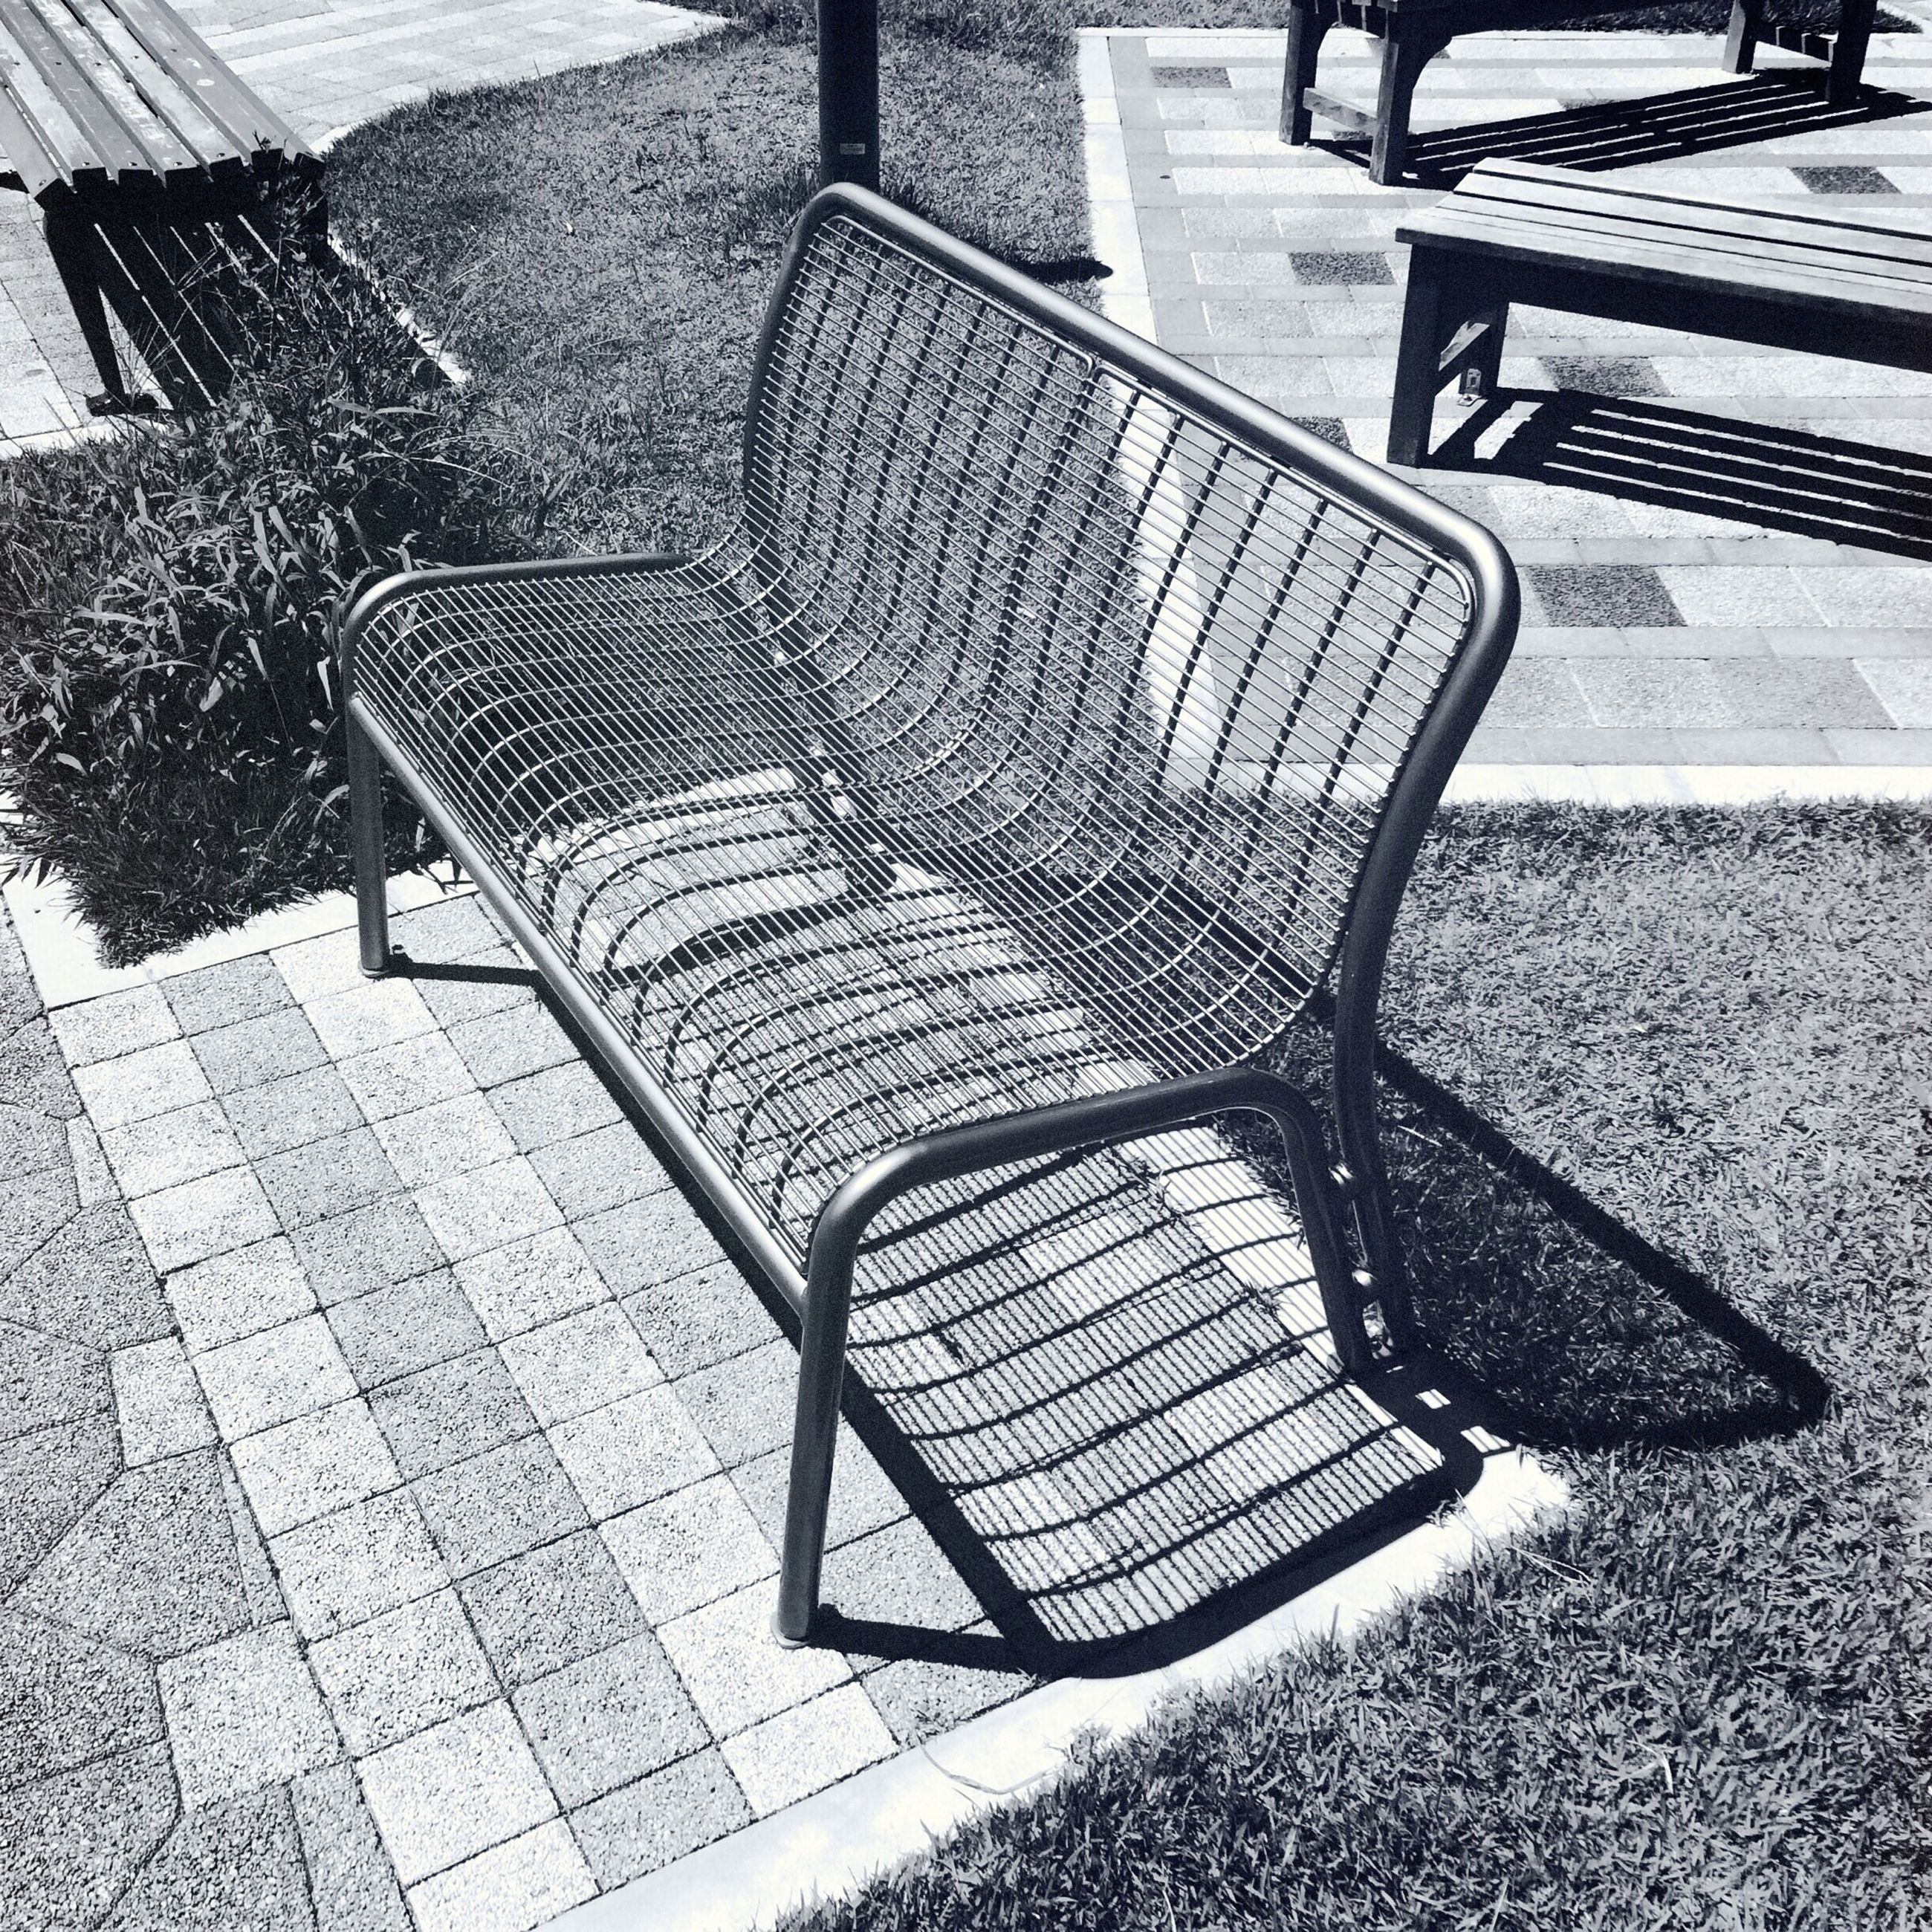 chair, empty, absence, seat, shadow, bench, high angle view, sunlight, cobblestone, paving stone, sidewalk, day, table, no people, outdoors, footpath, park bench, furniture, street, pattern